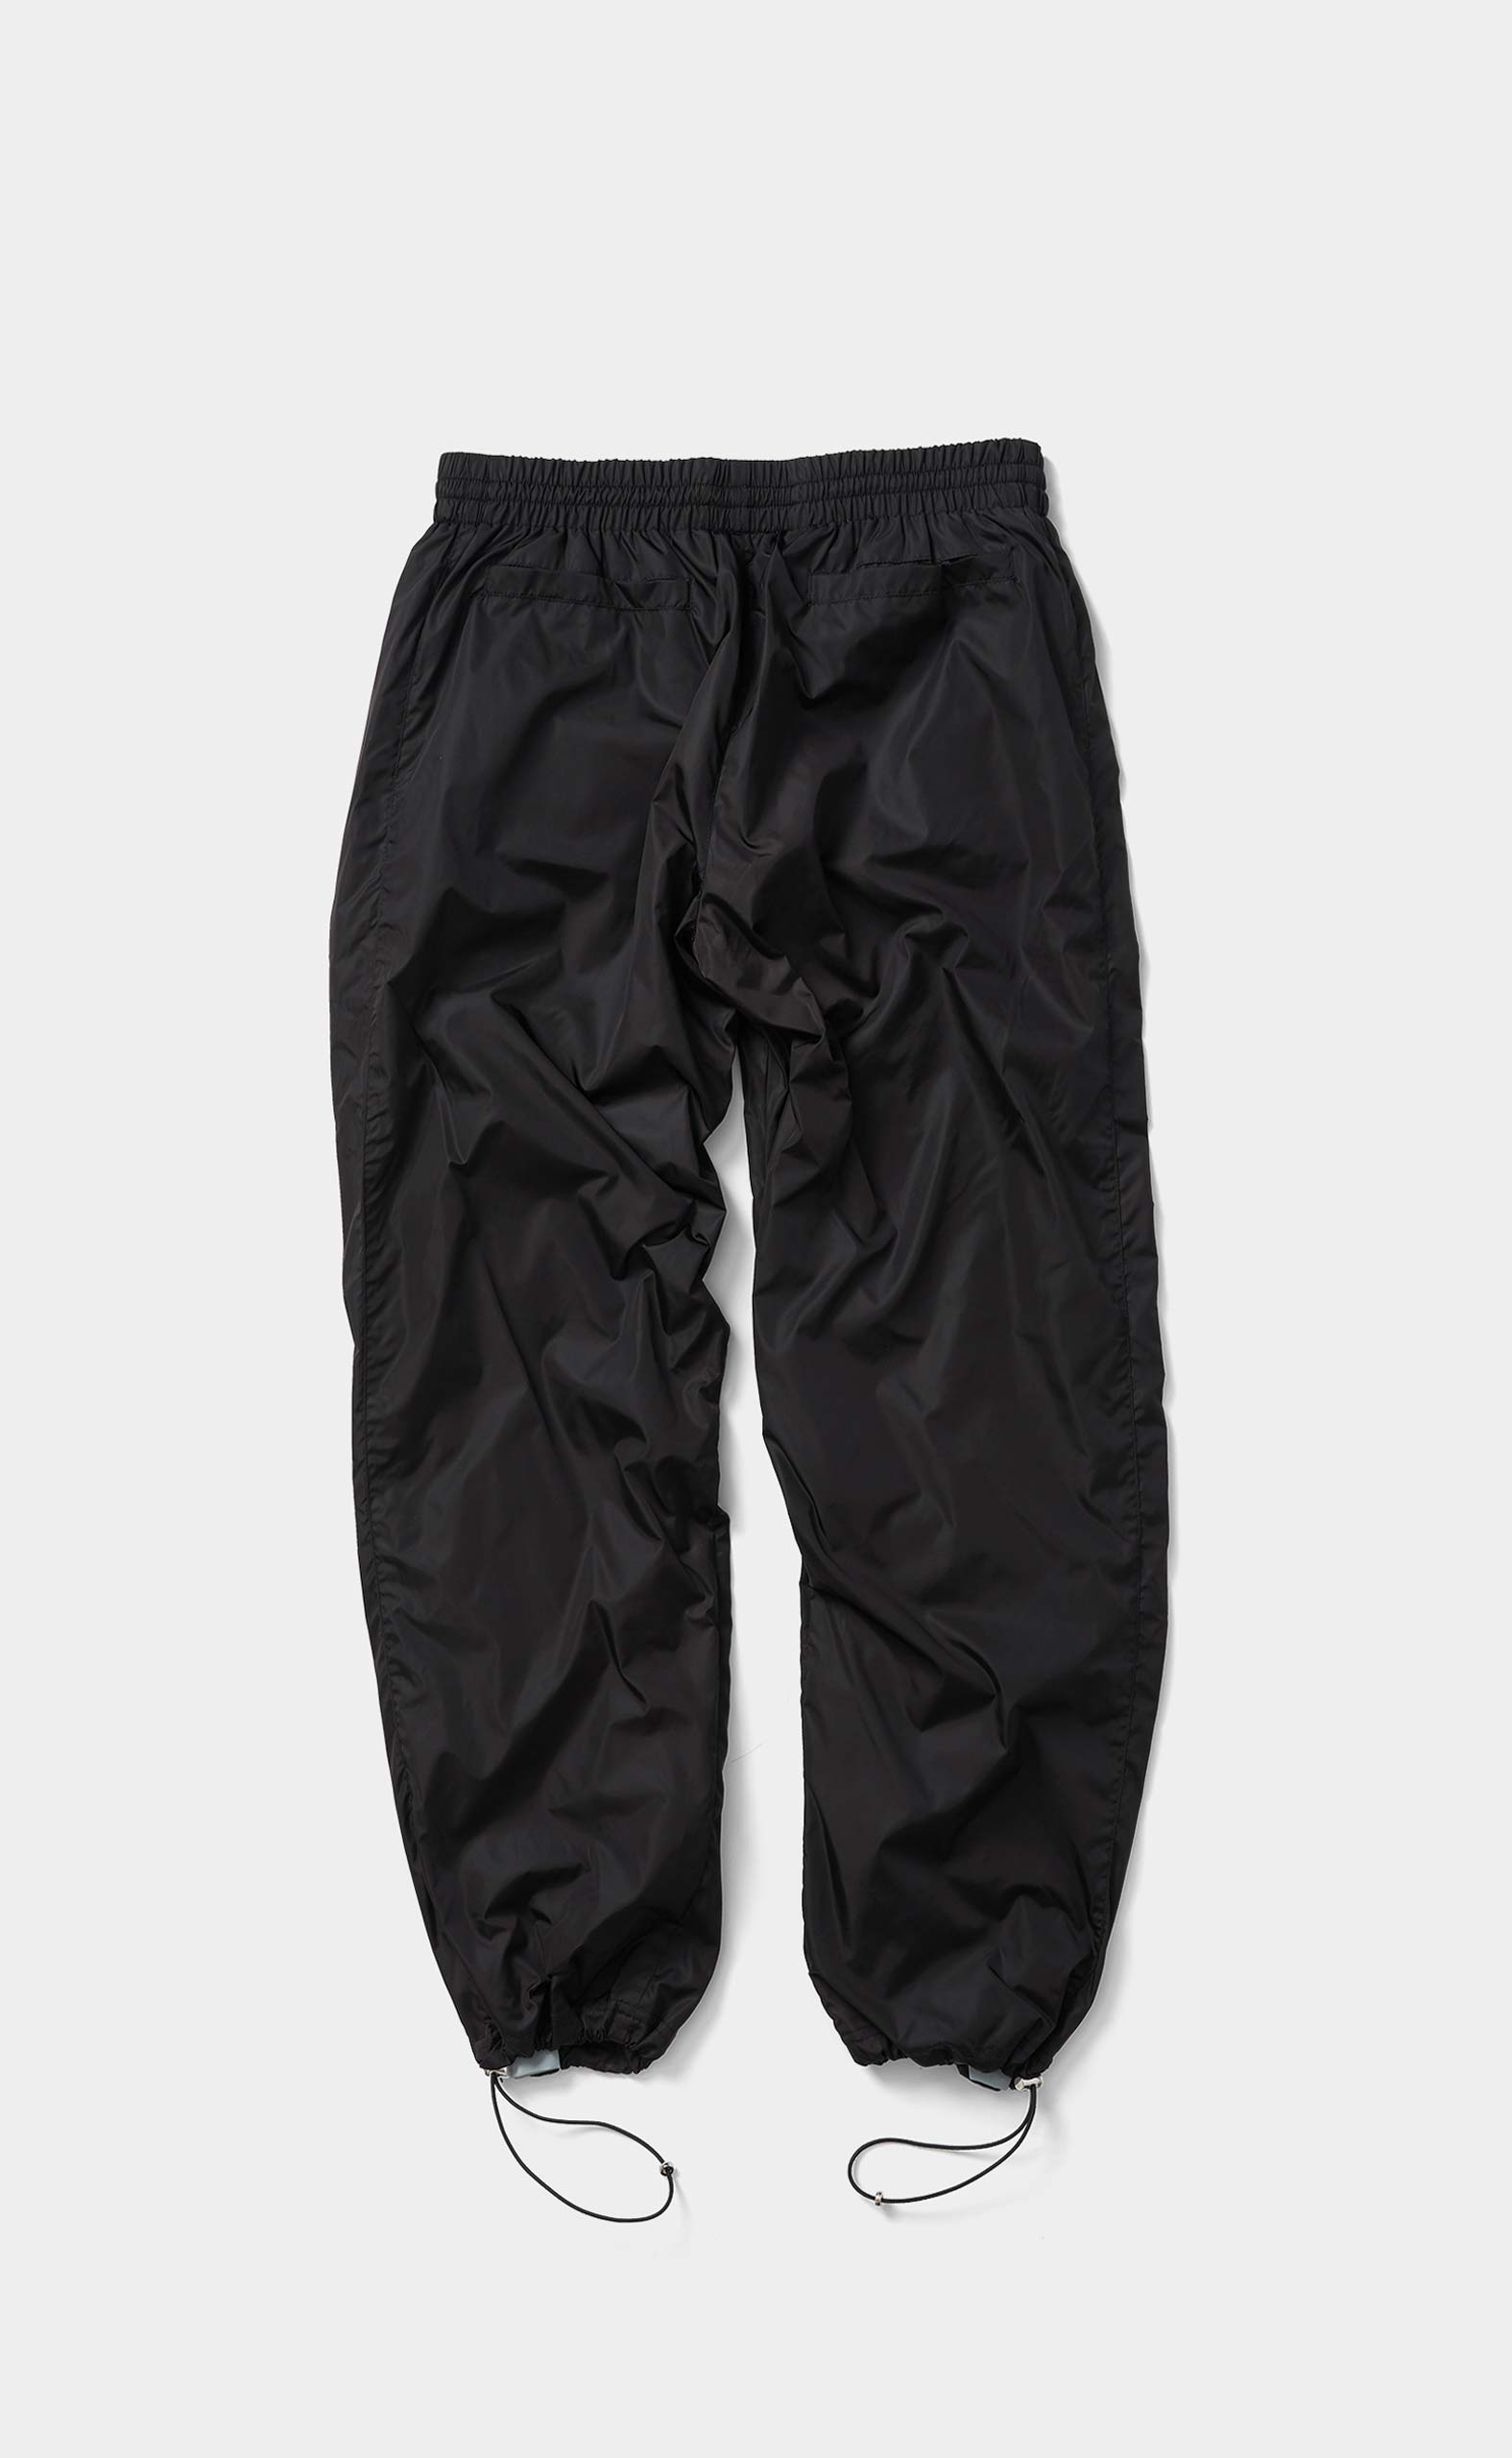 Nylon Cord Pants Wide Fit Classic Black